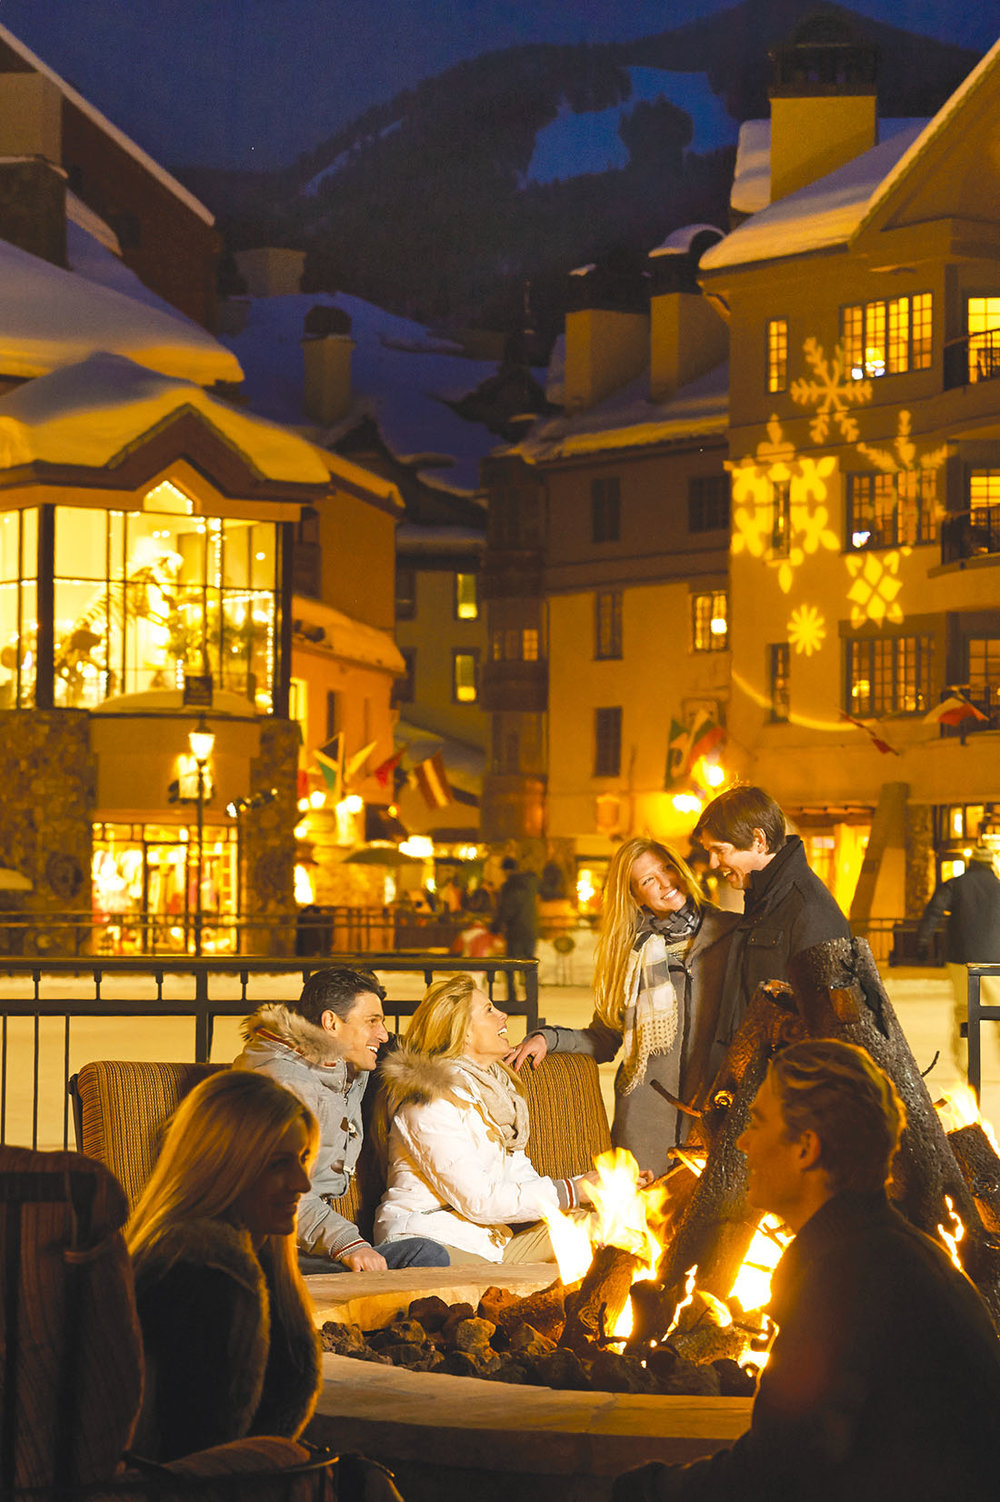 The firepit in Beaver Creek Village. Photos courtesy of The Ritz-Carlton, Bachelor Gulch